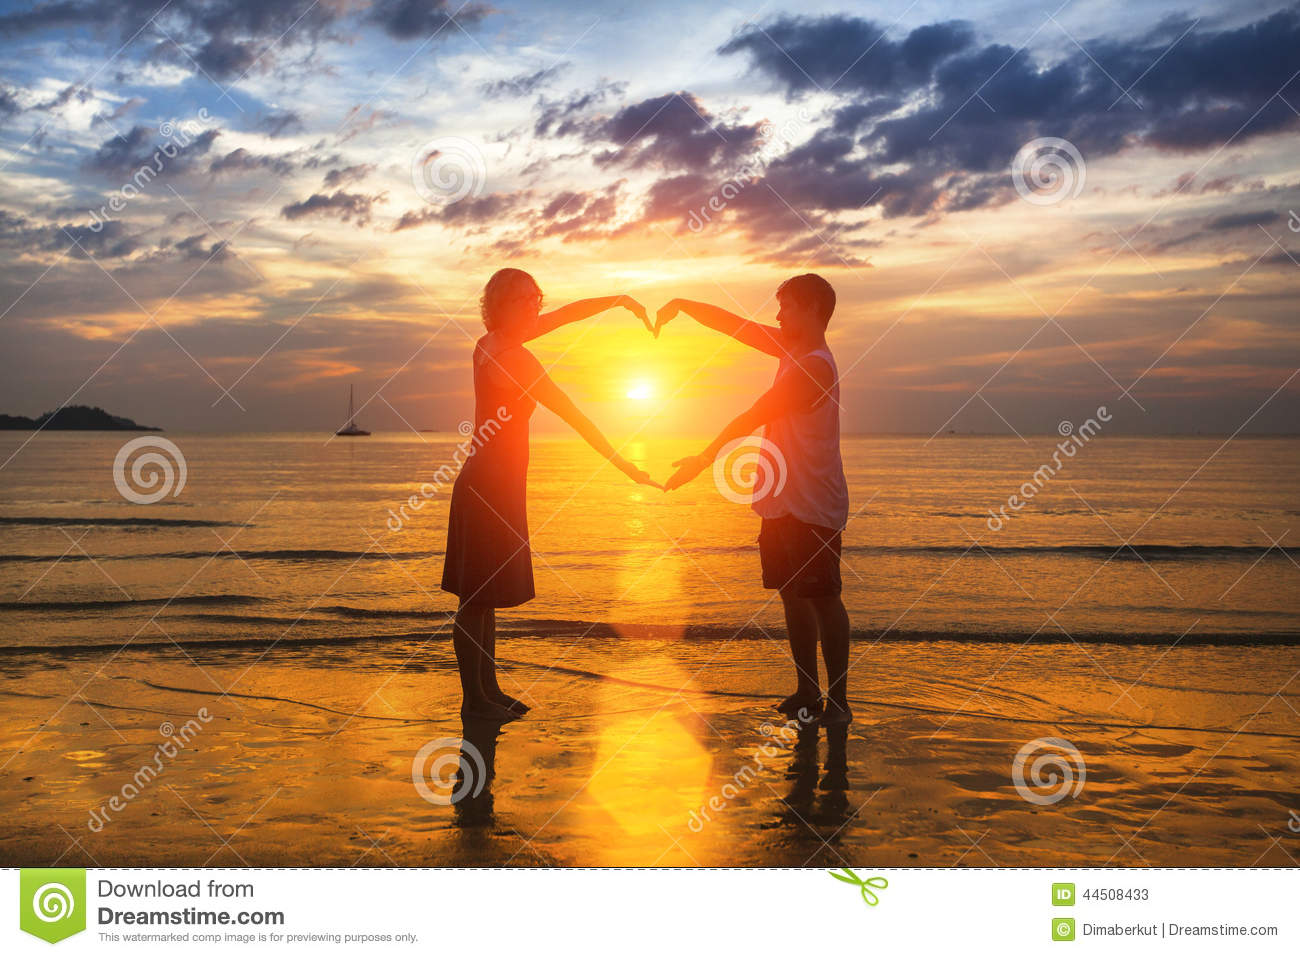 Silhouette of loving couple during an amazing sunset, holding hands in heart shape. Love.